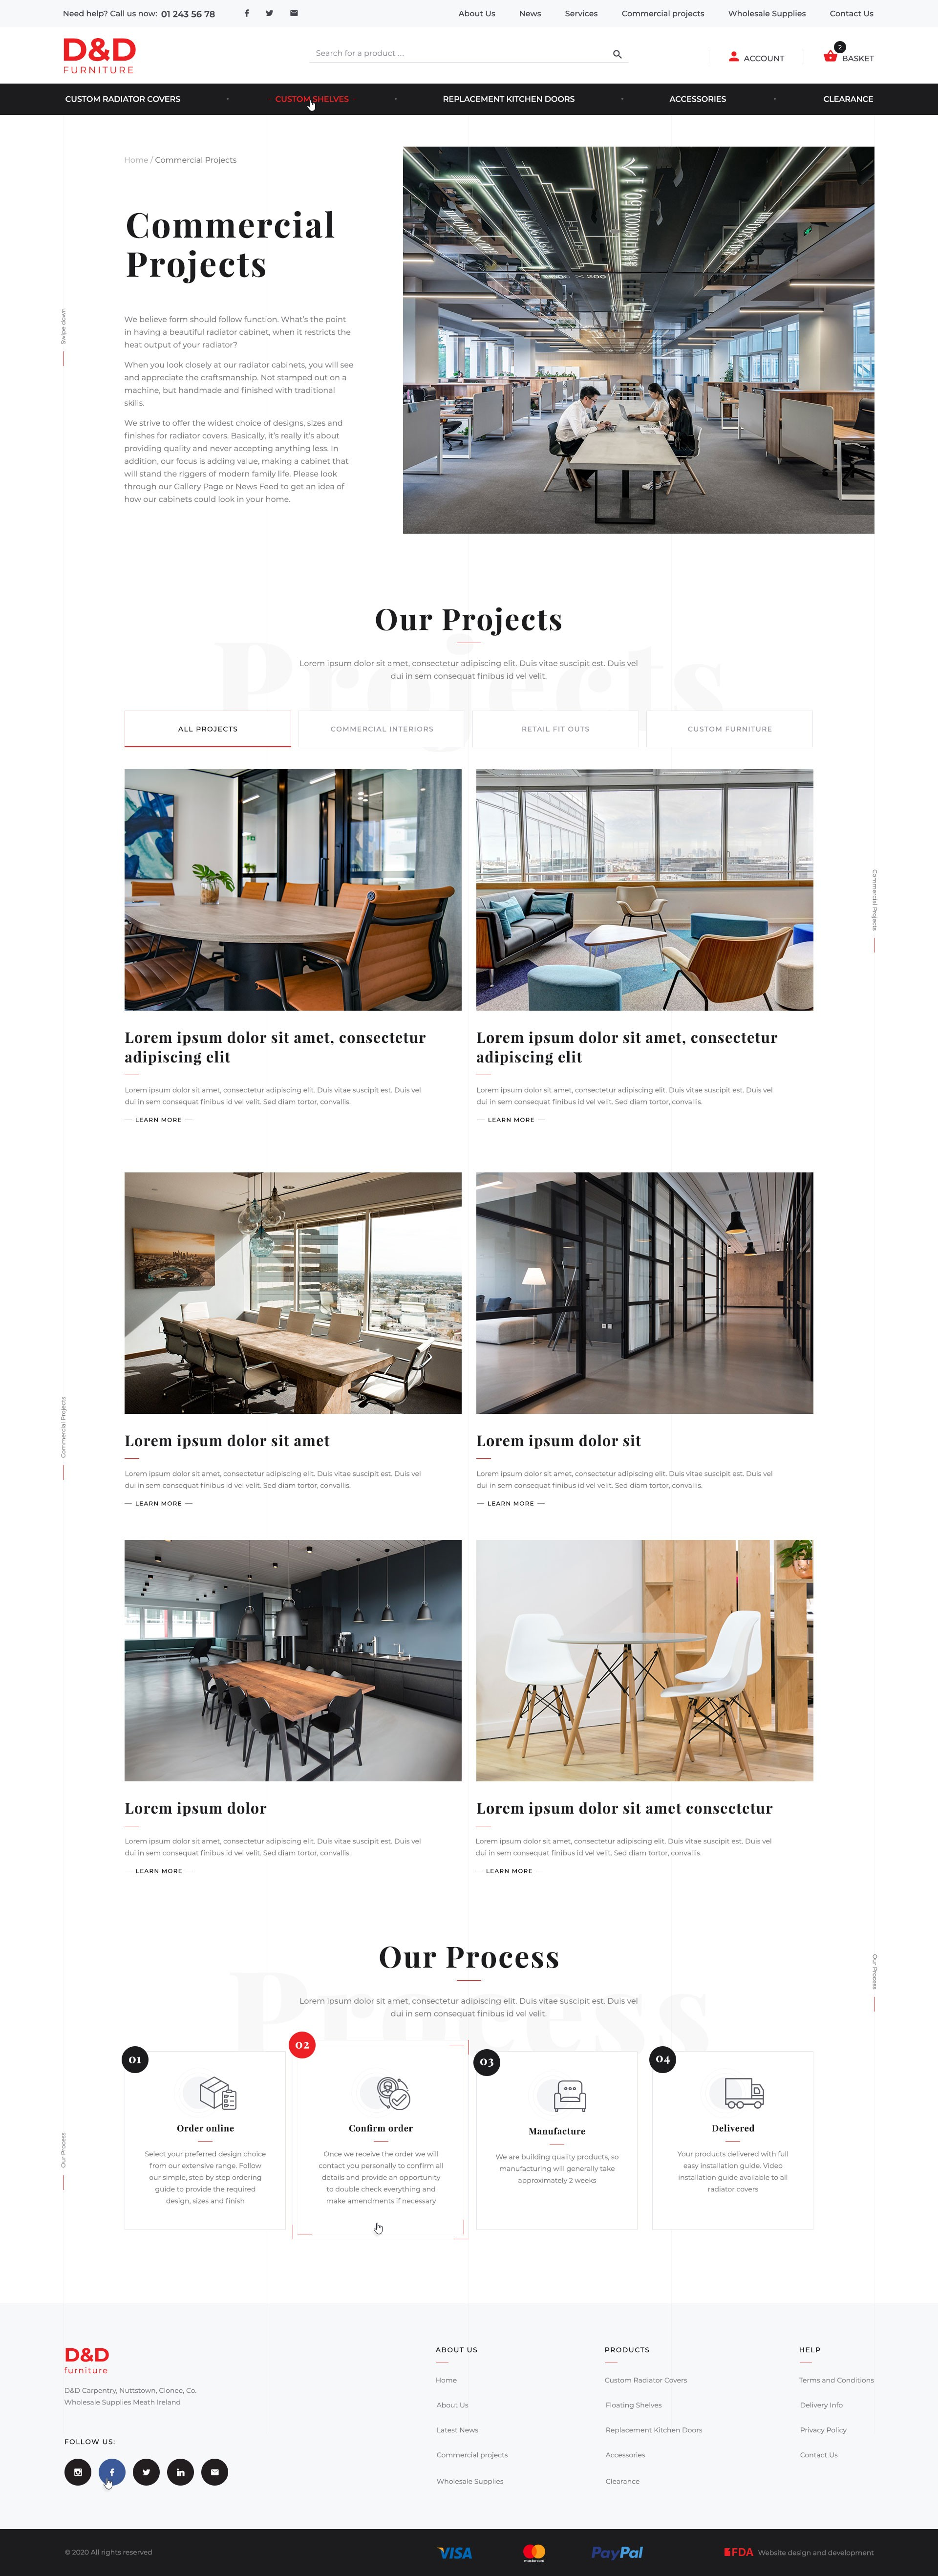 13_Commercial_Projects_DD-Furniture_1440px